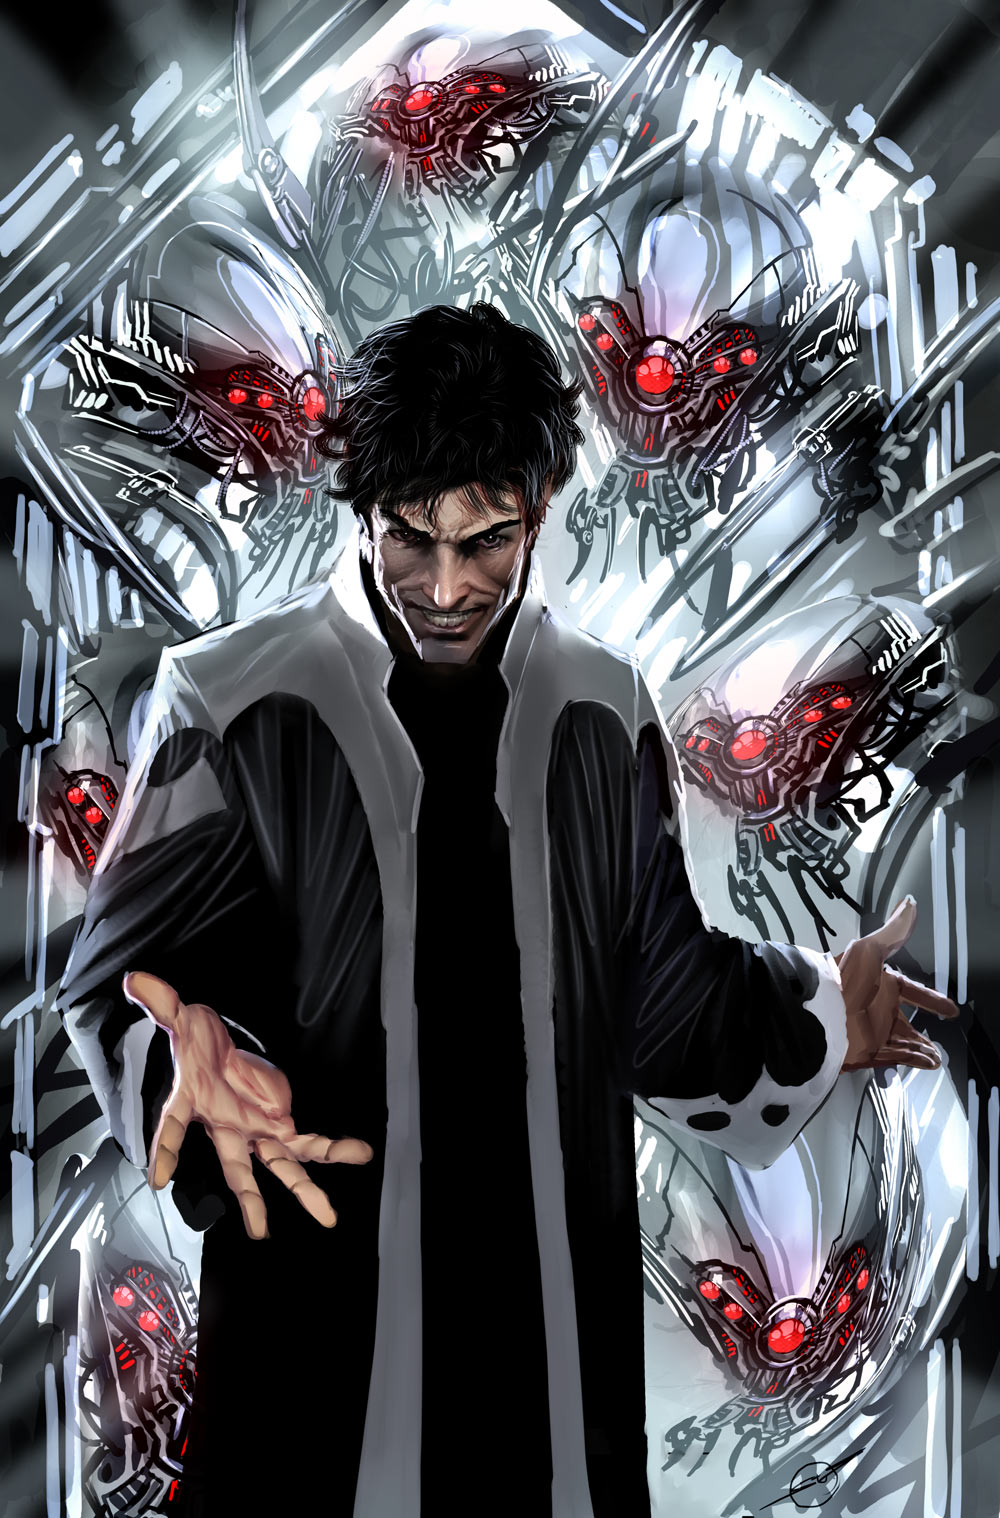 Game Of Thrones Ramsay Bolton Joins Marvel's Inhuman Royal Family AS Maximus The Mad